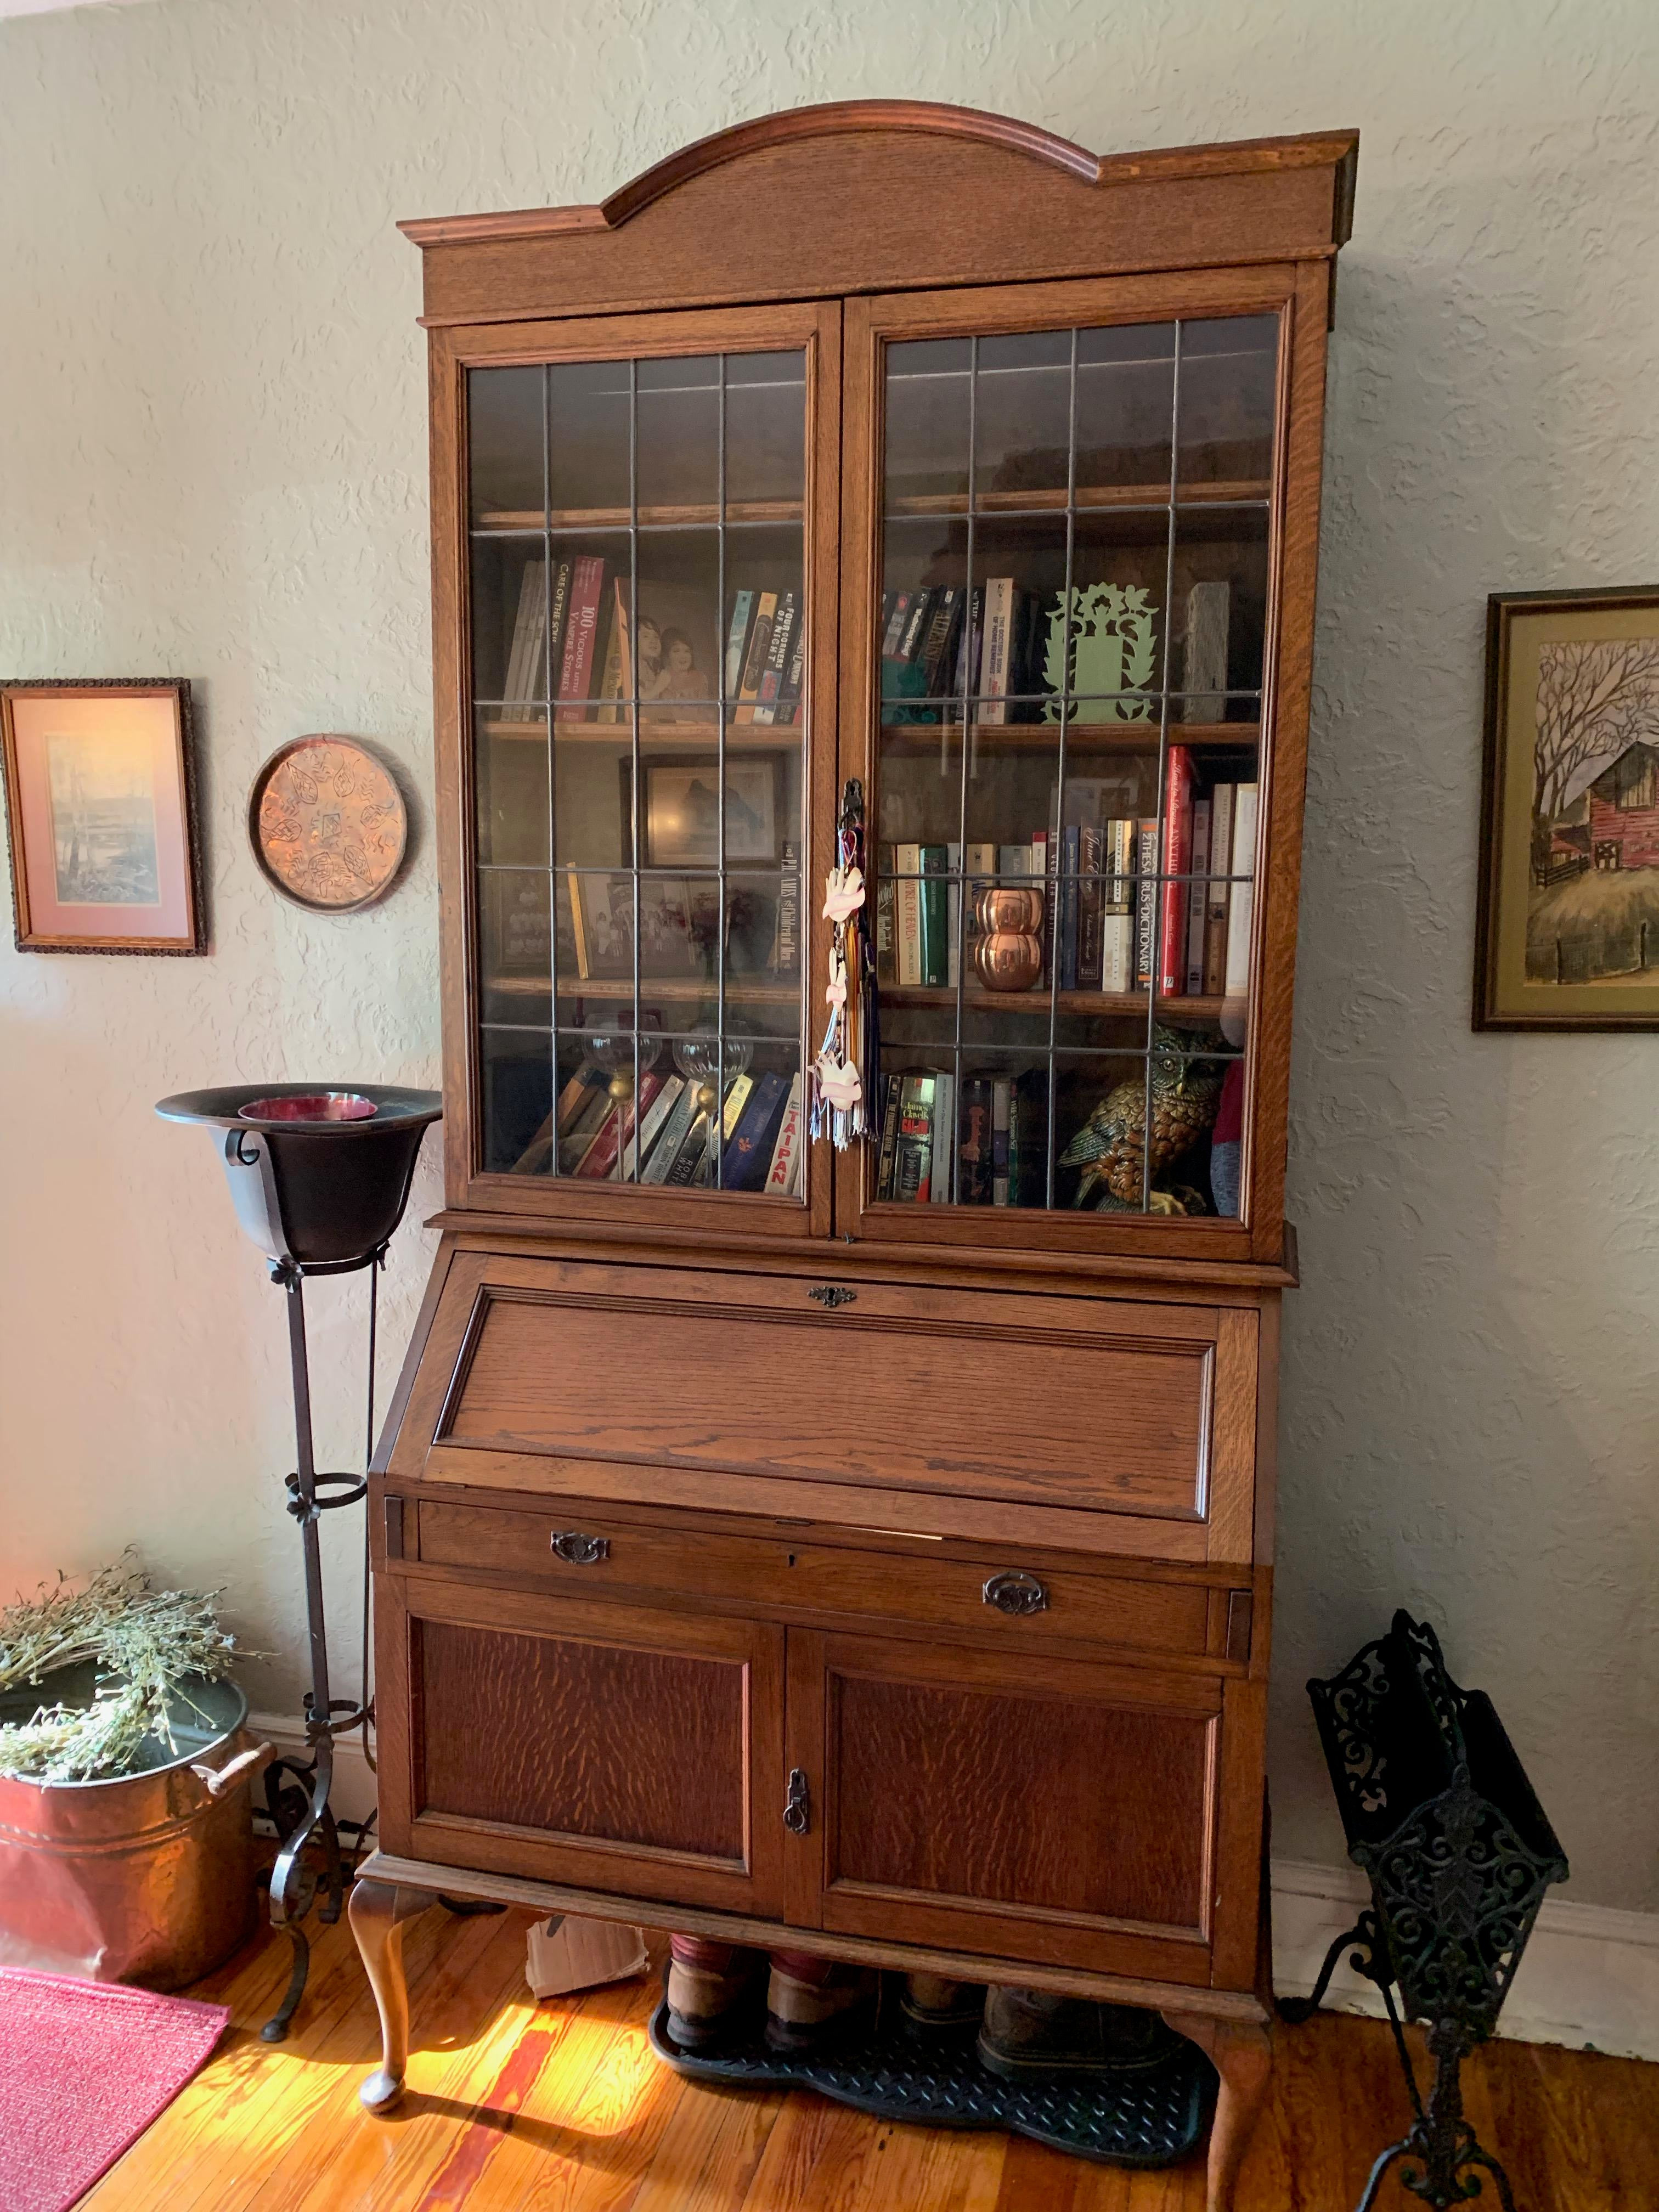 Best Way to Sell Antique Furniture Beautiful Helping My Parents Downsize while My Dad is In the Hospital